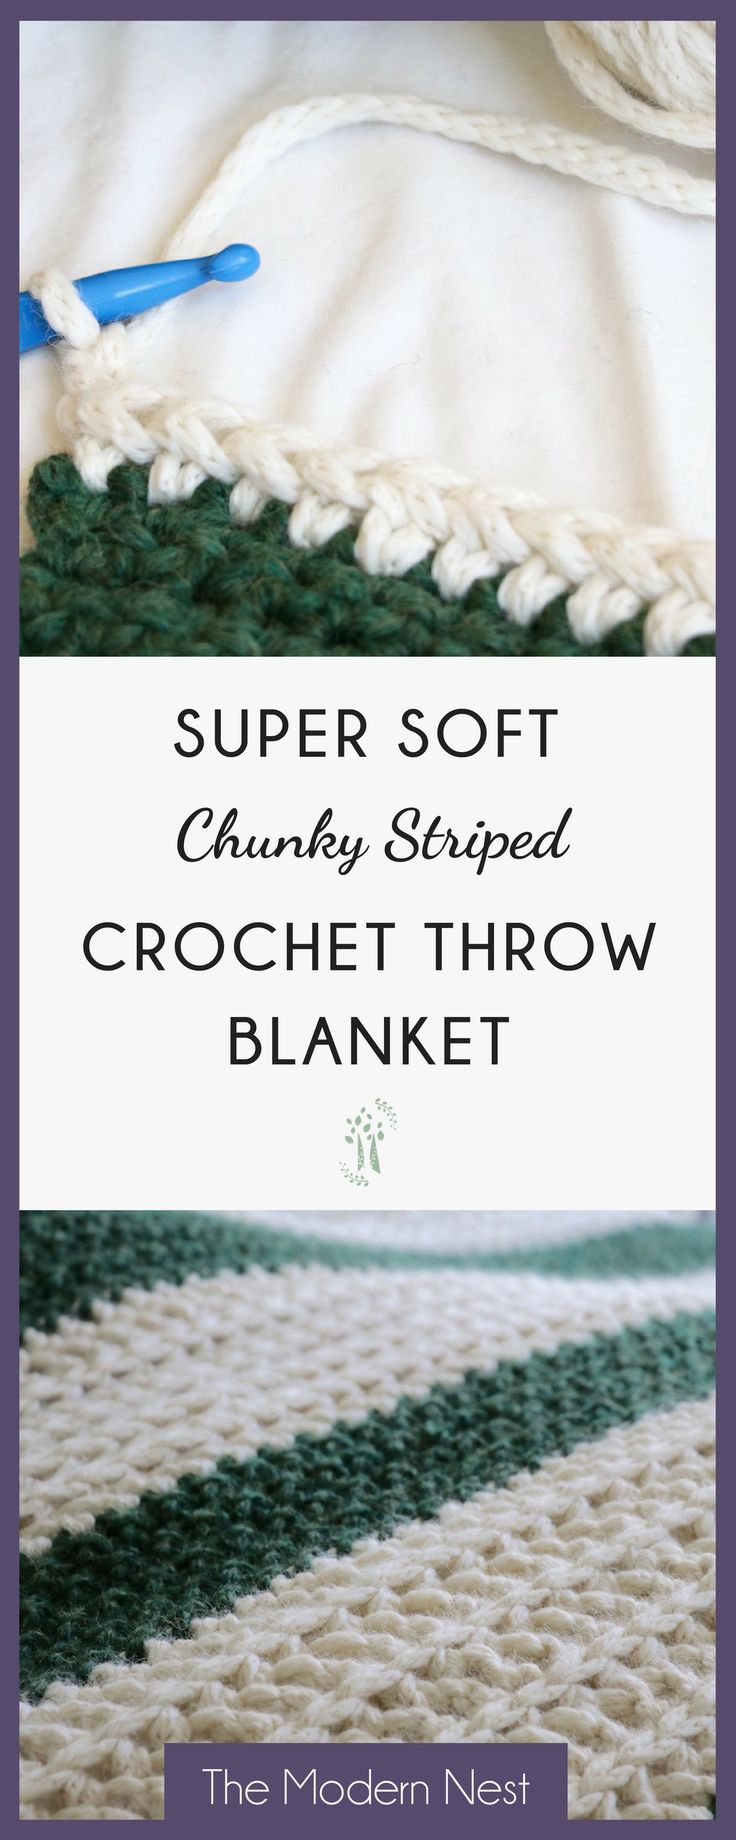 This pattern for a soft chunky striped crochet throw blanket is super fun and easy! A great pattern (with photos!) for beginners! Get the pattern at https://www.themodernnestblog.com/archives/888